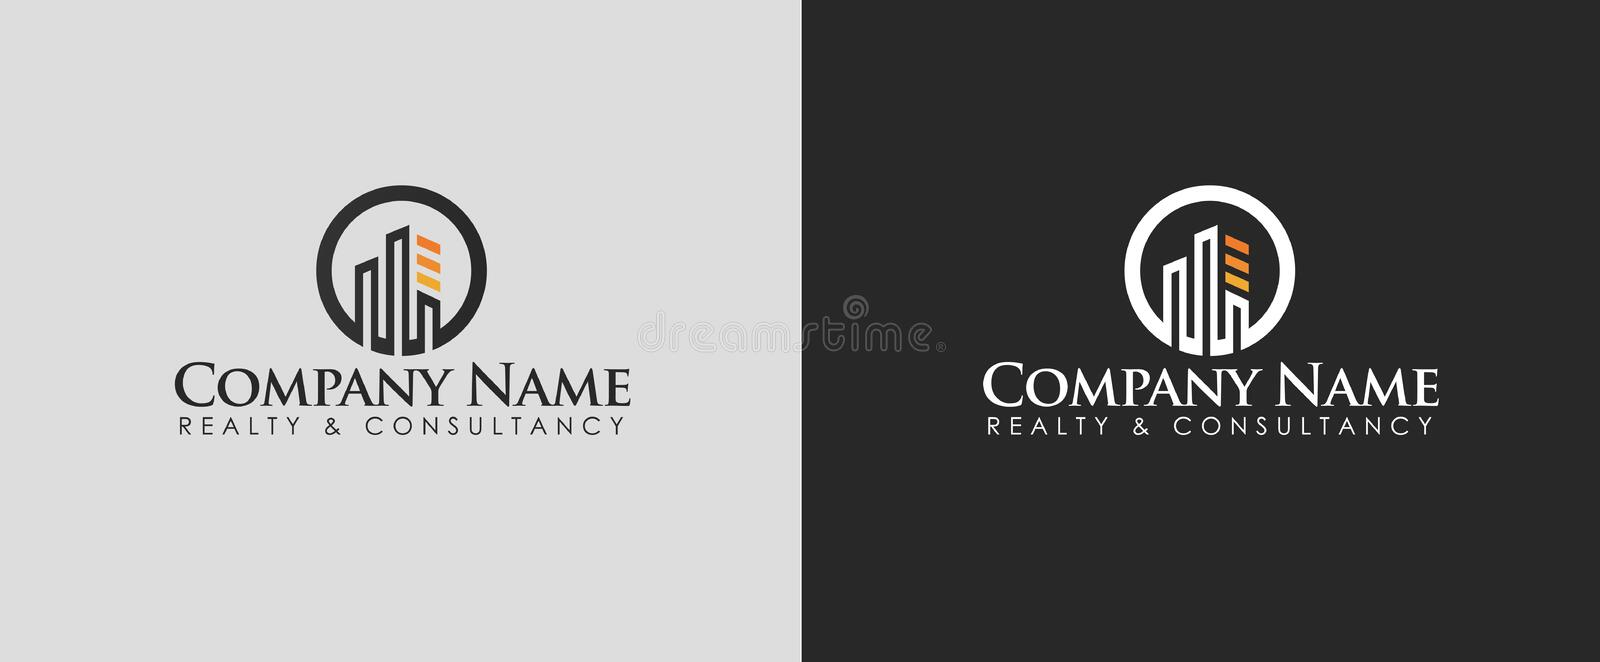 Real estate or Consultancy logo design vector with two different backgrounds. stock photo